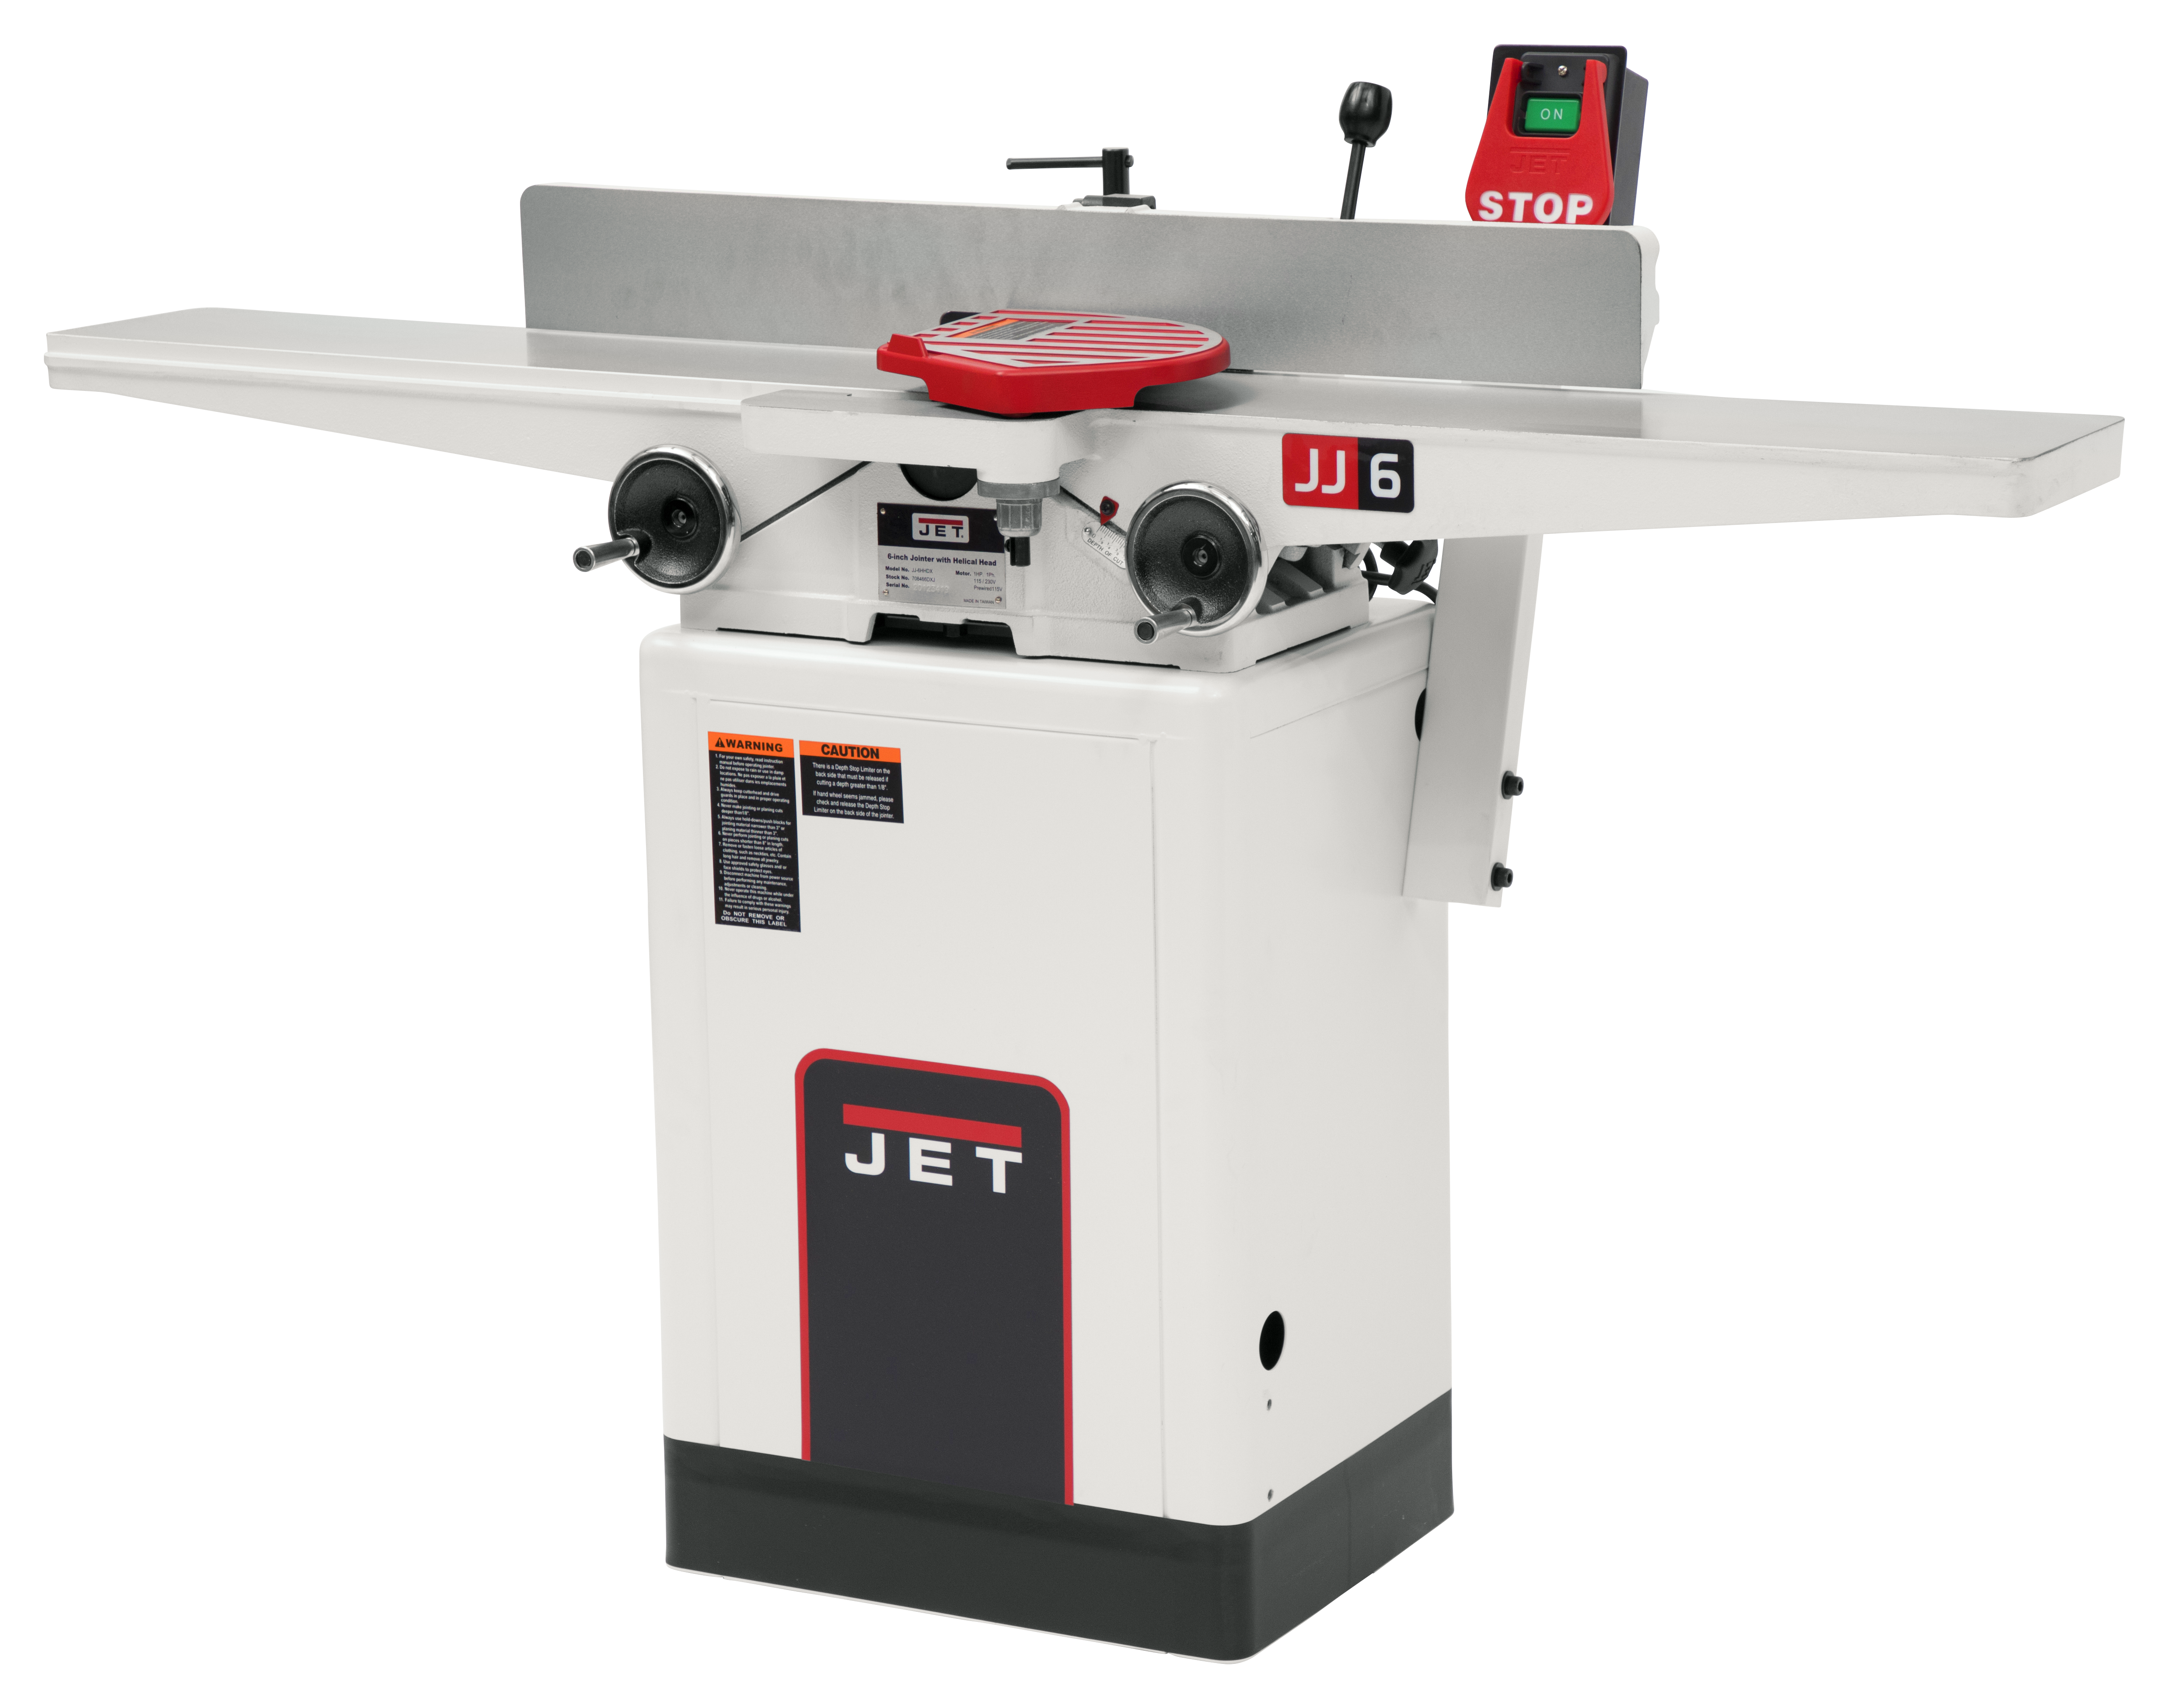 """JJ-6HHDX, 6"""" Long Bed Wood Jointer with Helical Head Kit"""